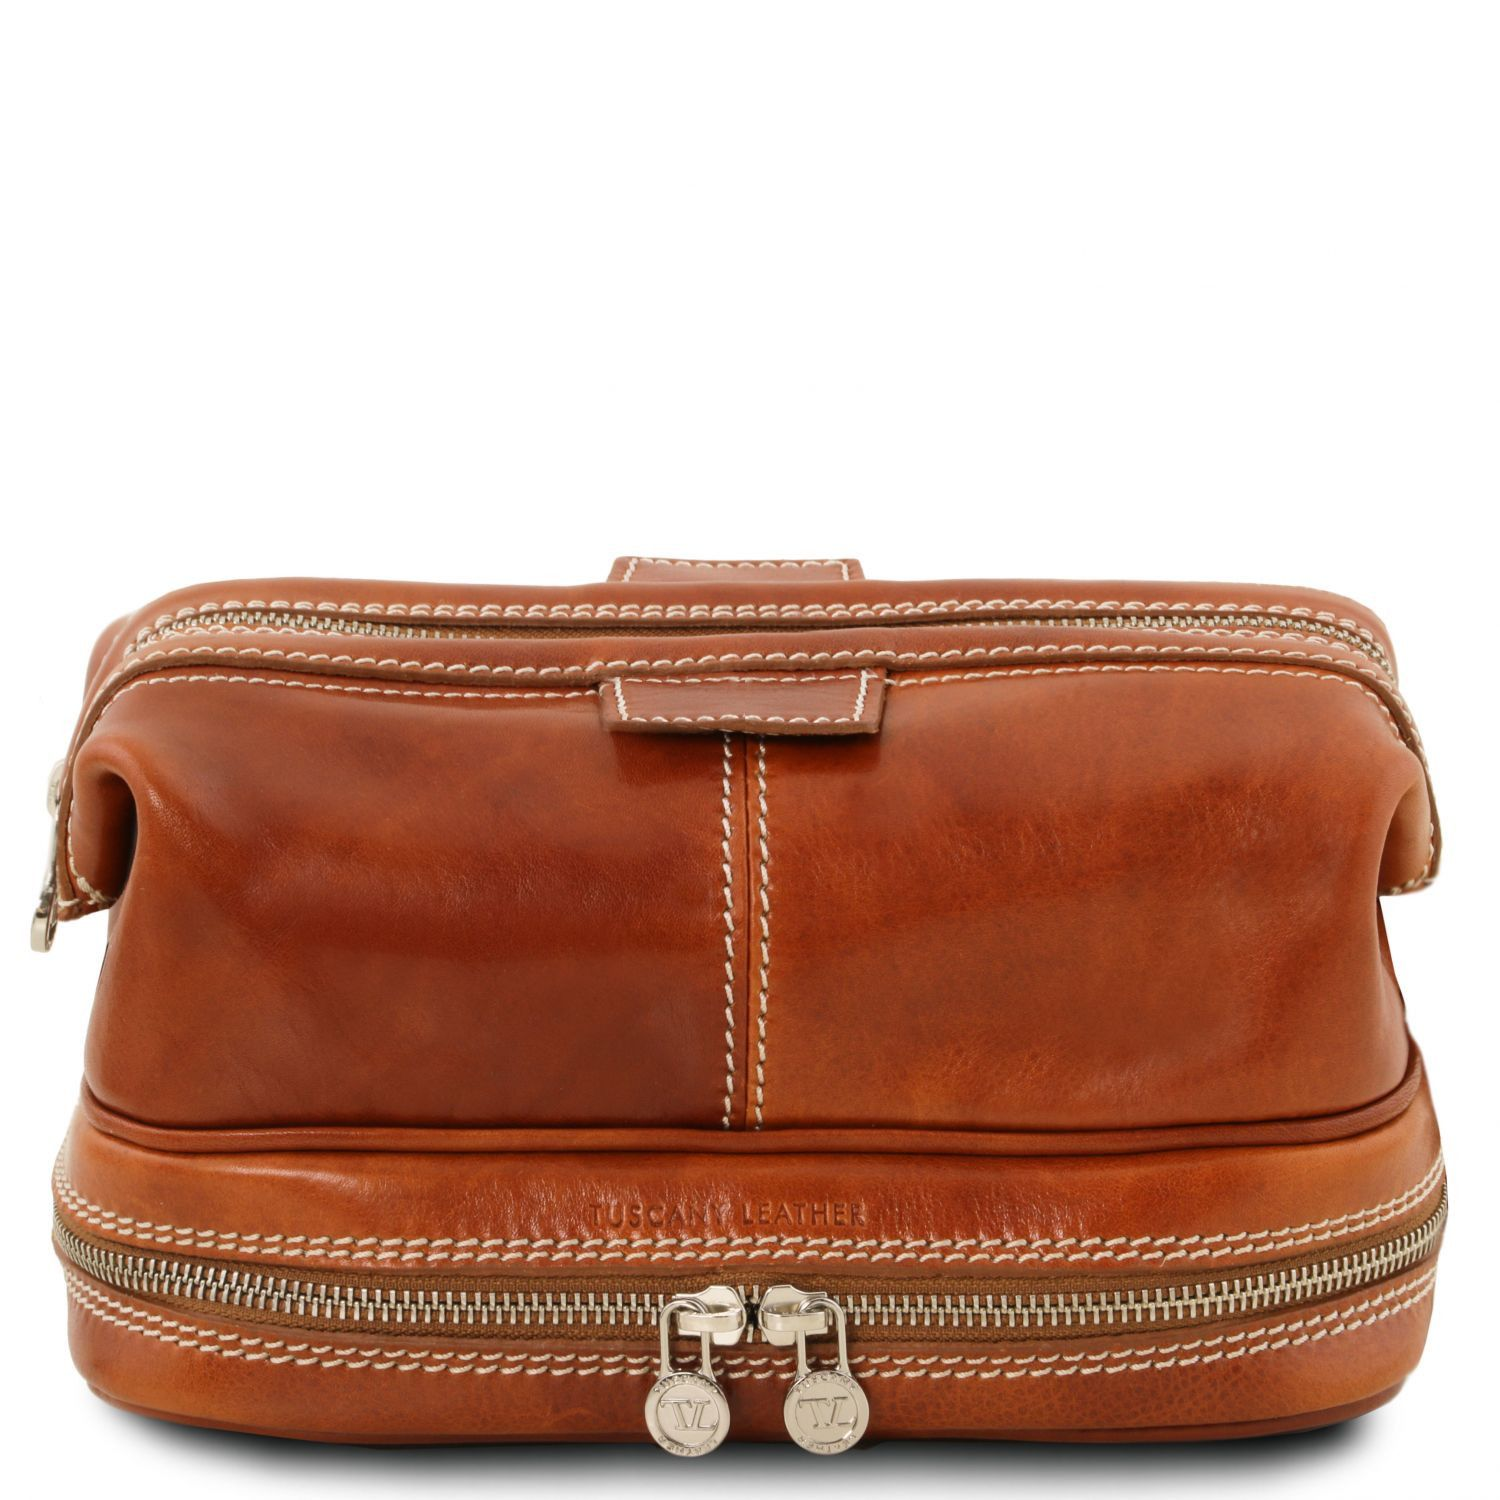 Patrick - Leather toilet bag (TL141717) - Travel leather accessories | DILUSSOBAGS